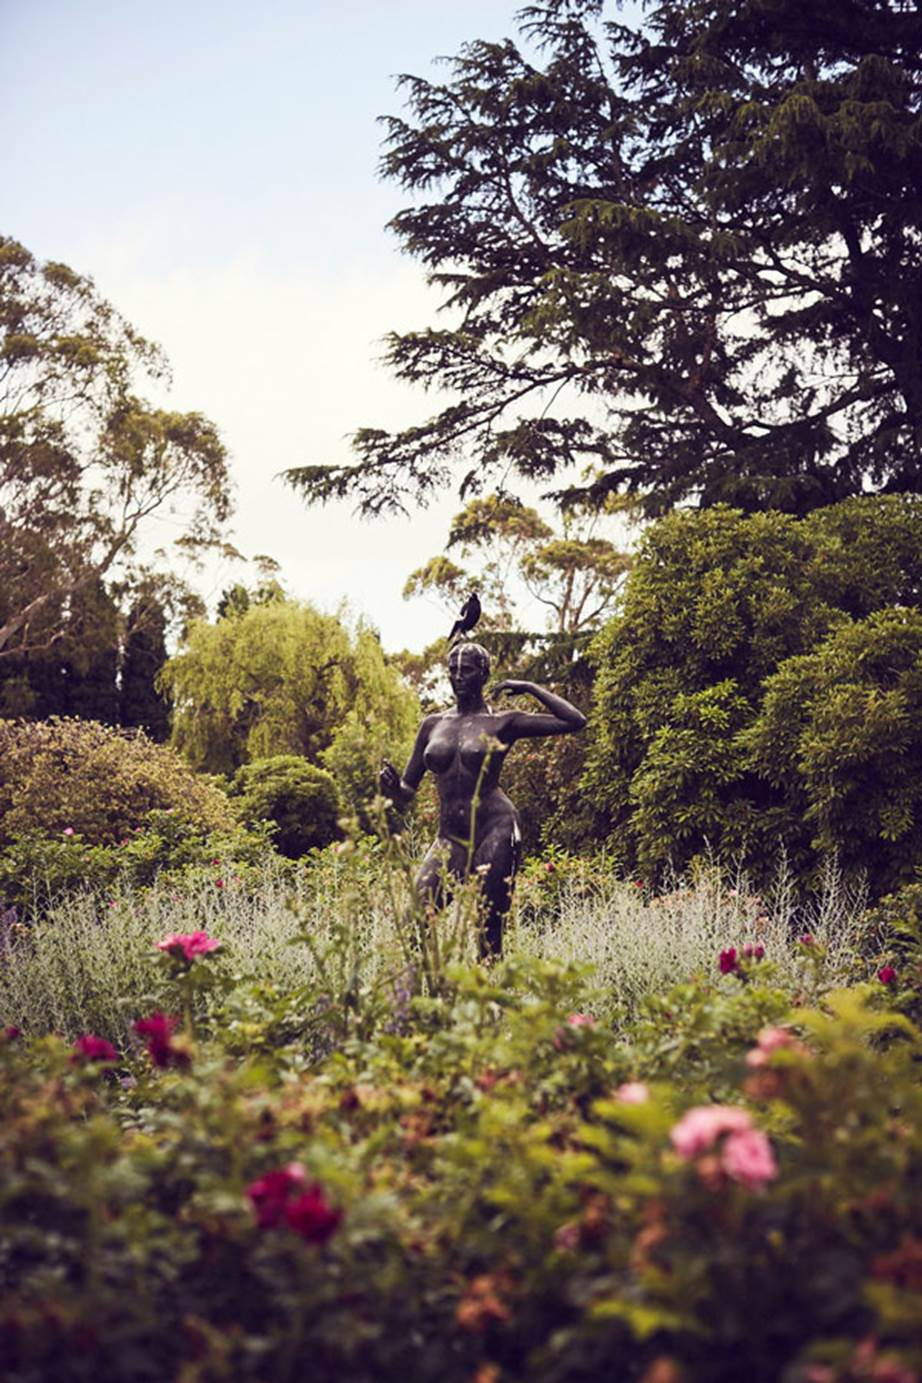 Hopewood House - Weddings  - Harpers Bazaar - Woodland Wedding in the Souther Highlands - Alyssa and Adriano - Statue and Magpie.jpg